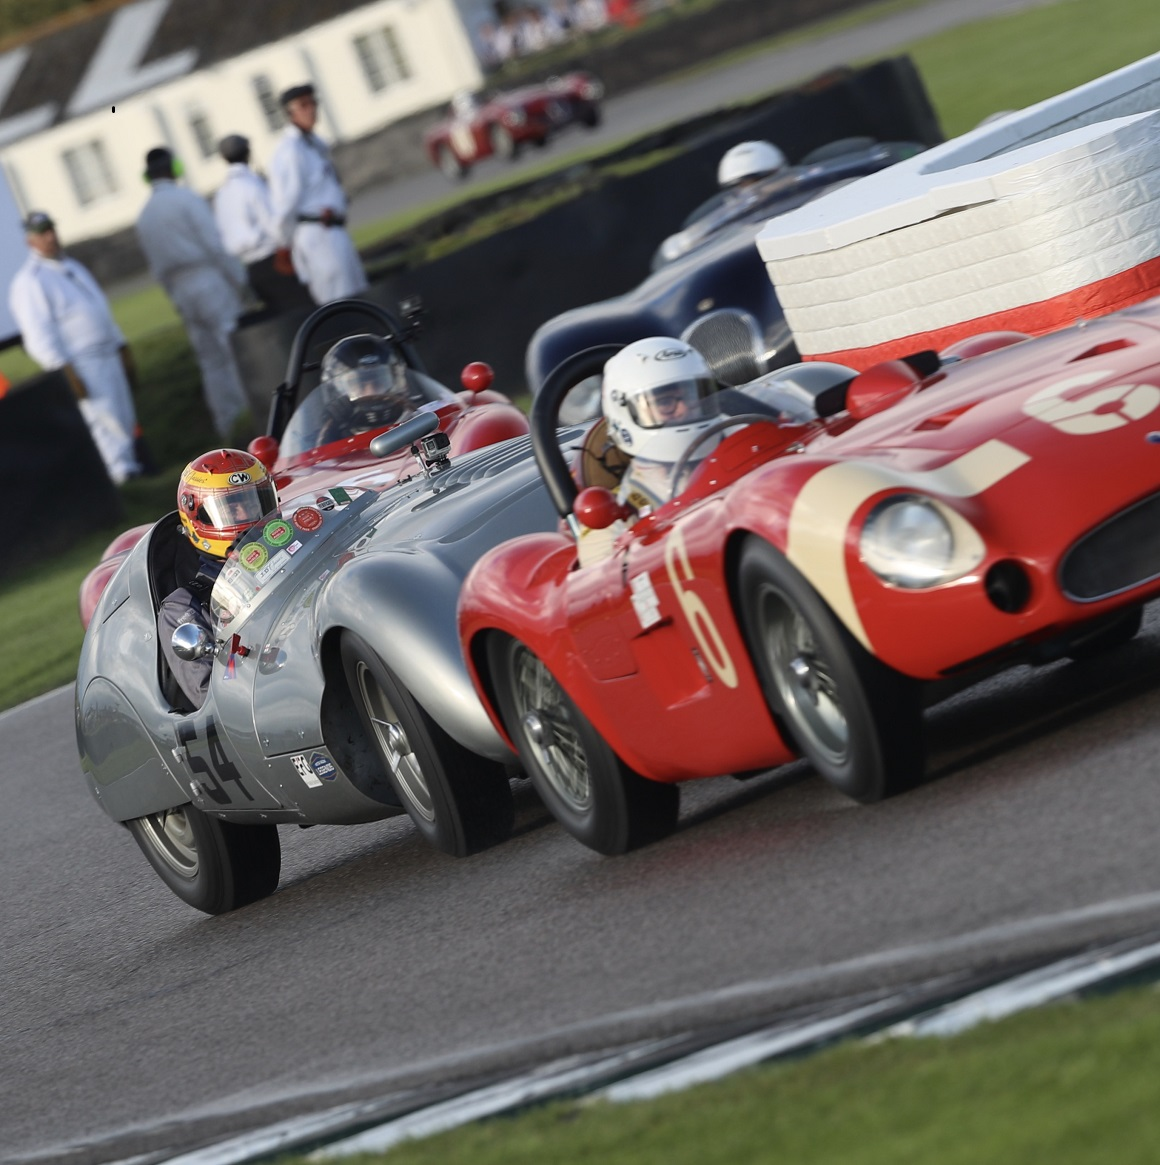 Starting the race from the back of the grid, the Cooper T33 charged from the back of the grid to the front to claim another victory in the Freddie March Memorial Trophy.